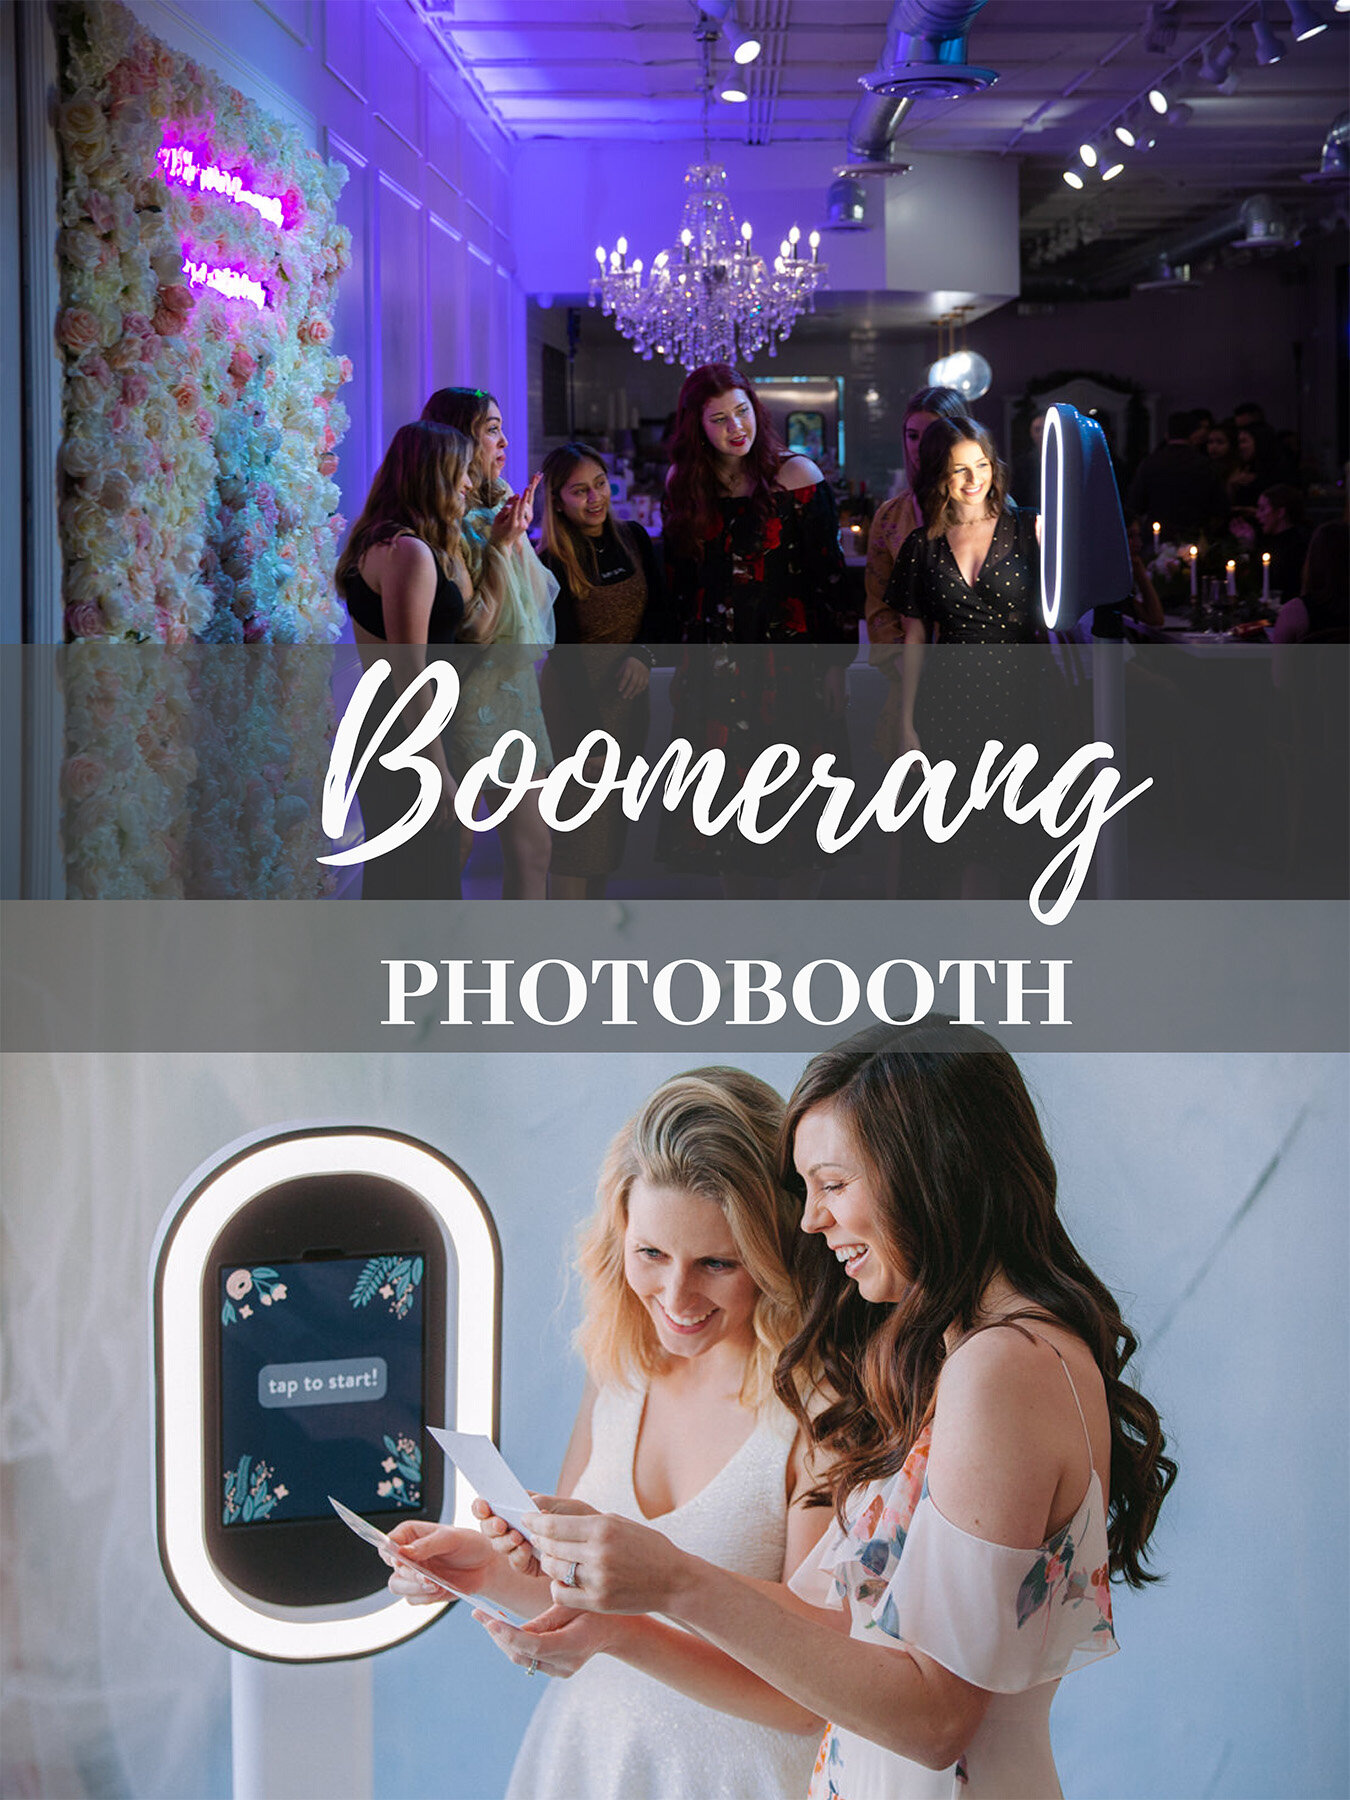 Covid 19 Update For Weddings Events Photobooths New York Wedding Photographer Angelica Criscuolo Photography